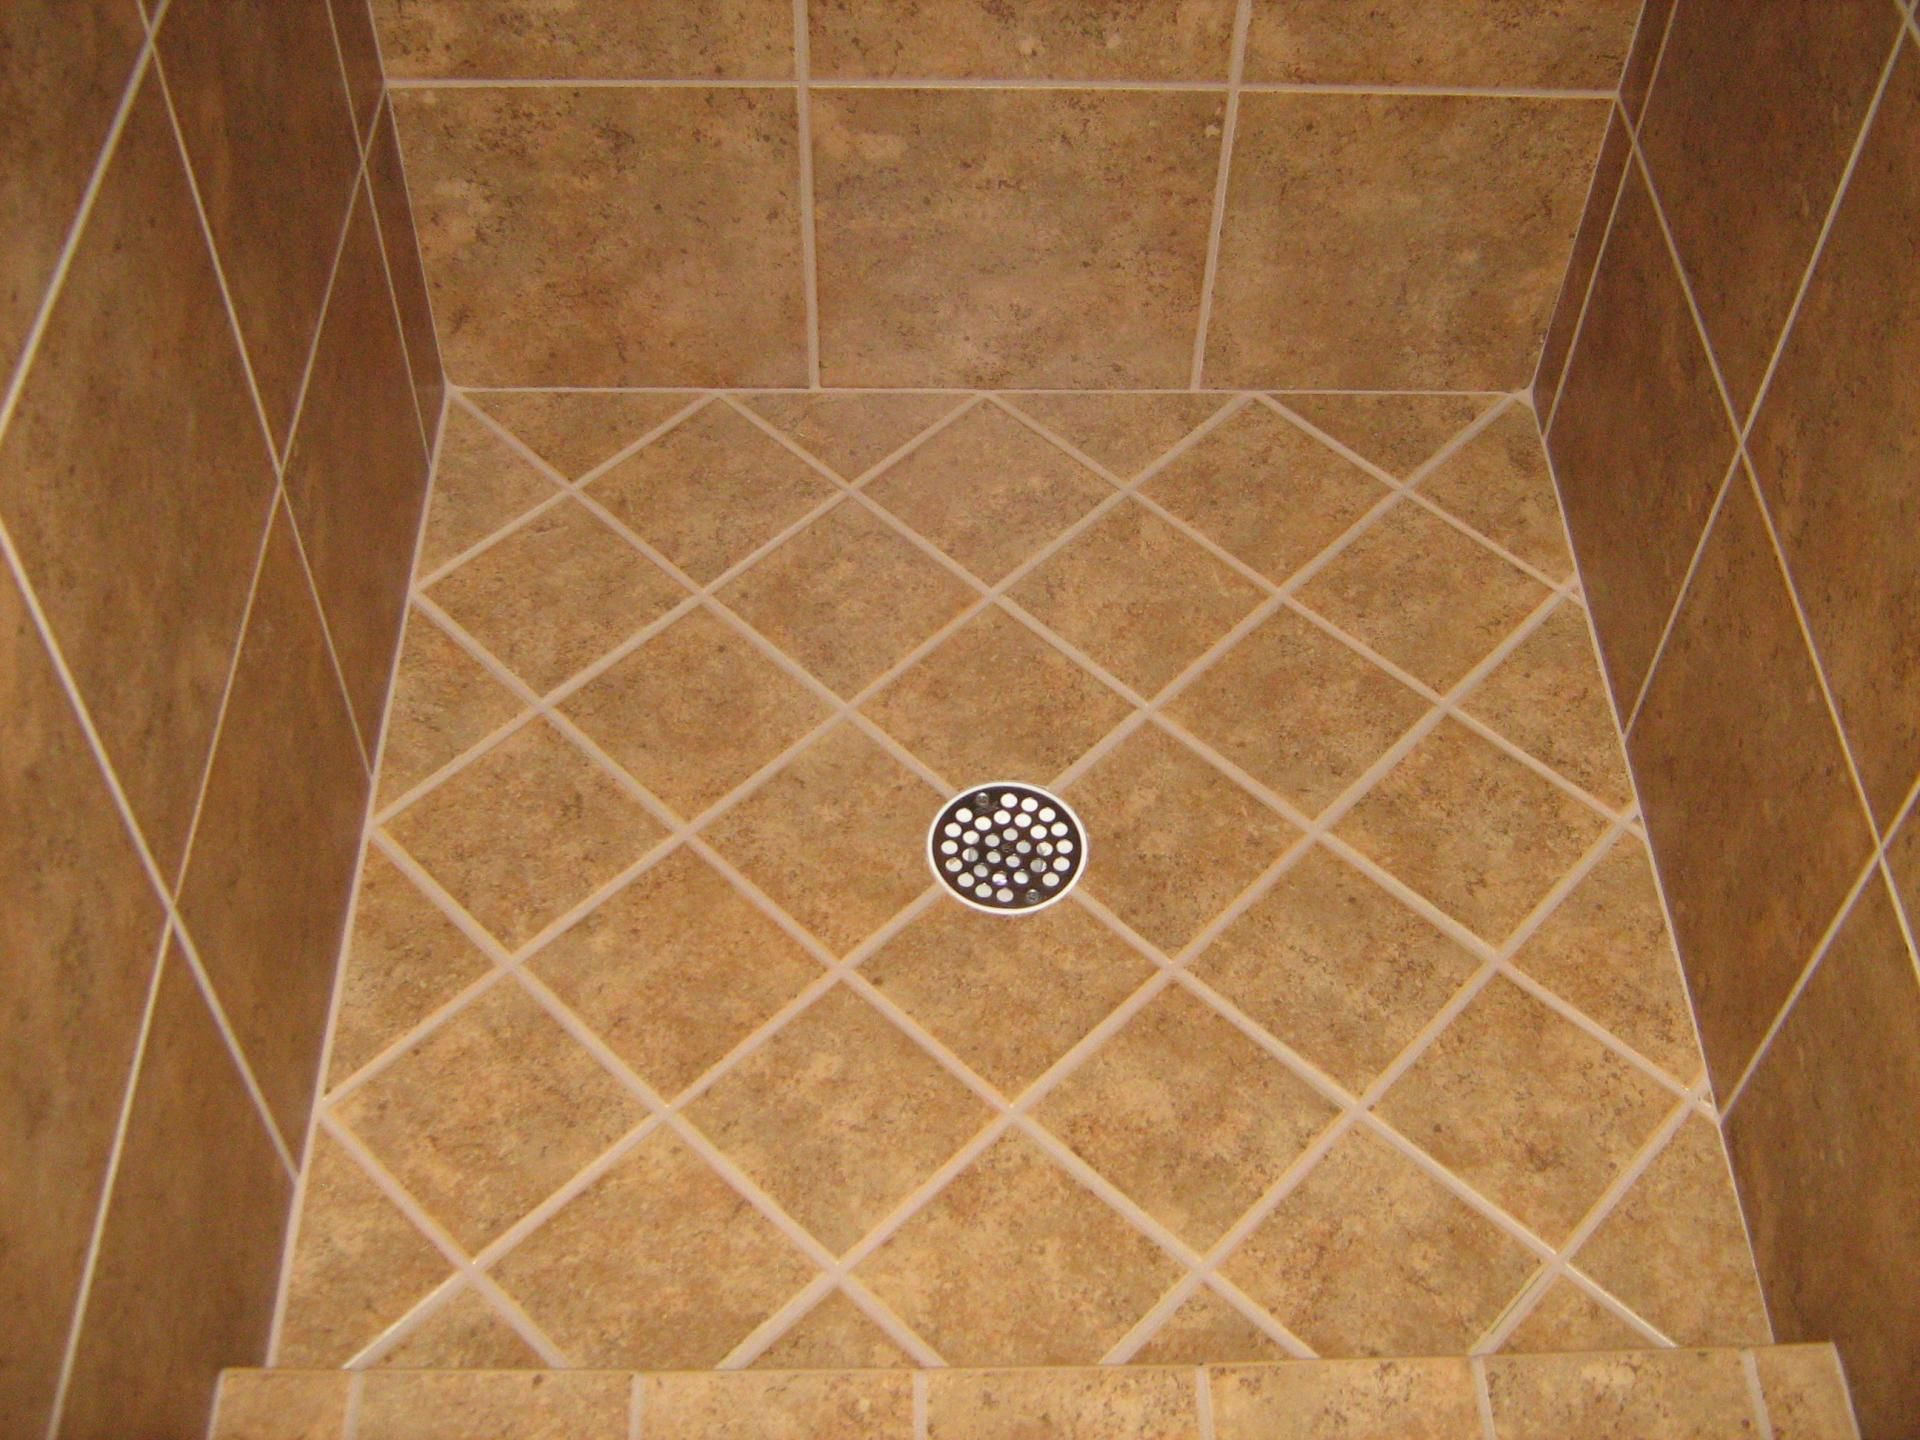 Stand up shower designs shower tile in small stand Floor tile design ideas for small bathrooms